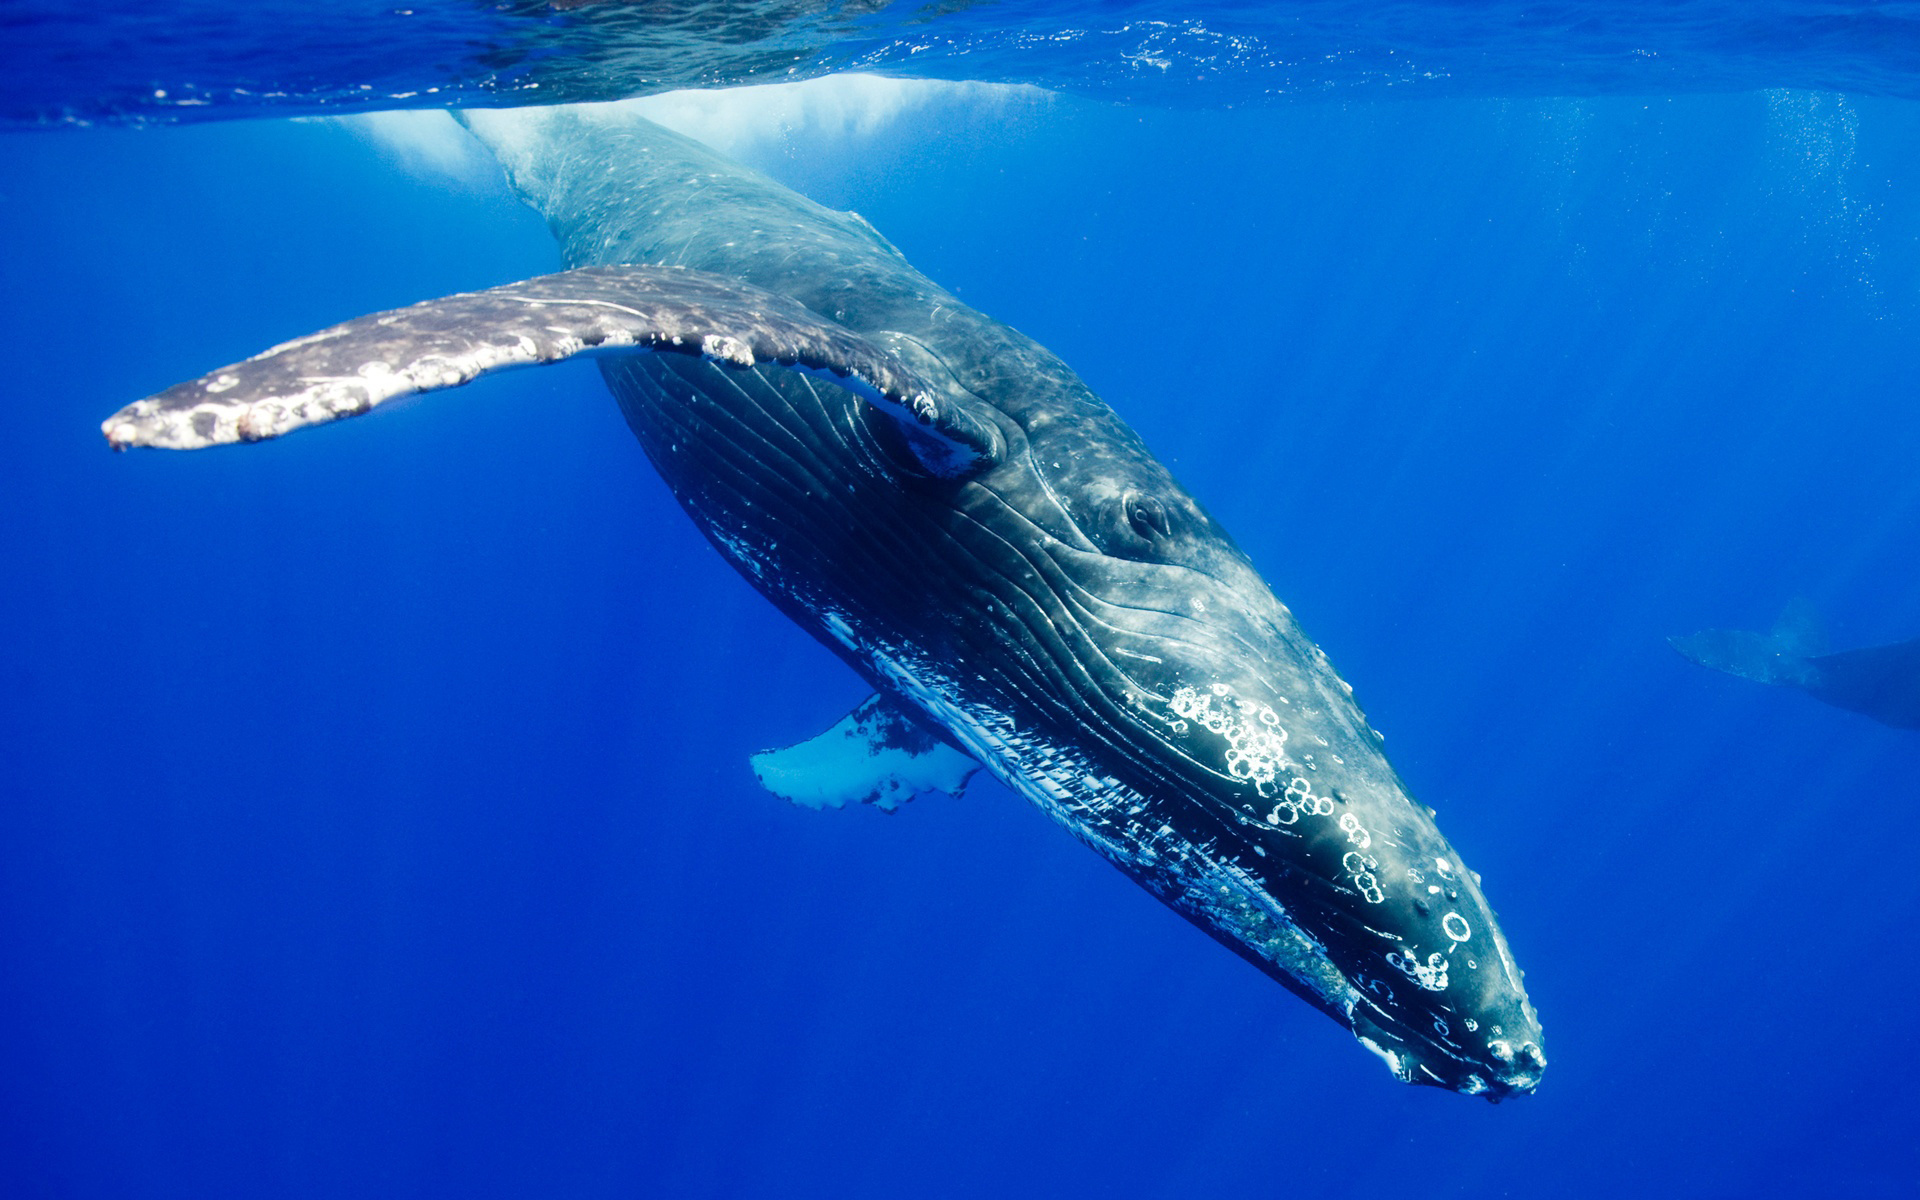 Whale HD Wallpapers Download Desktop Wallpaper Images 1920x1200